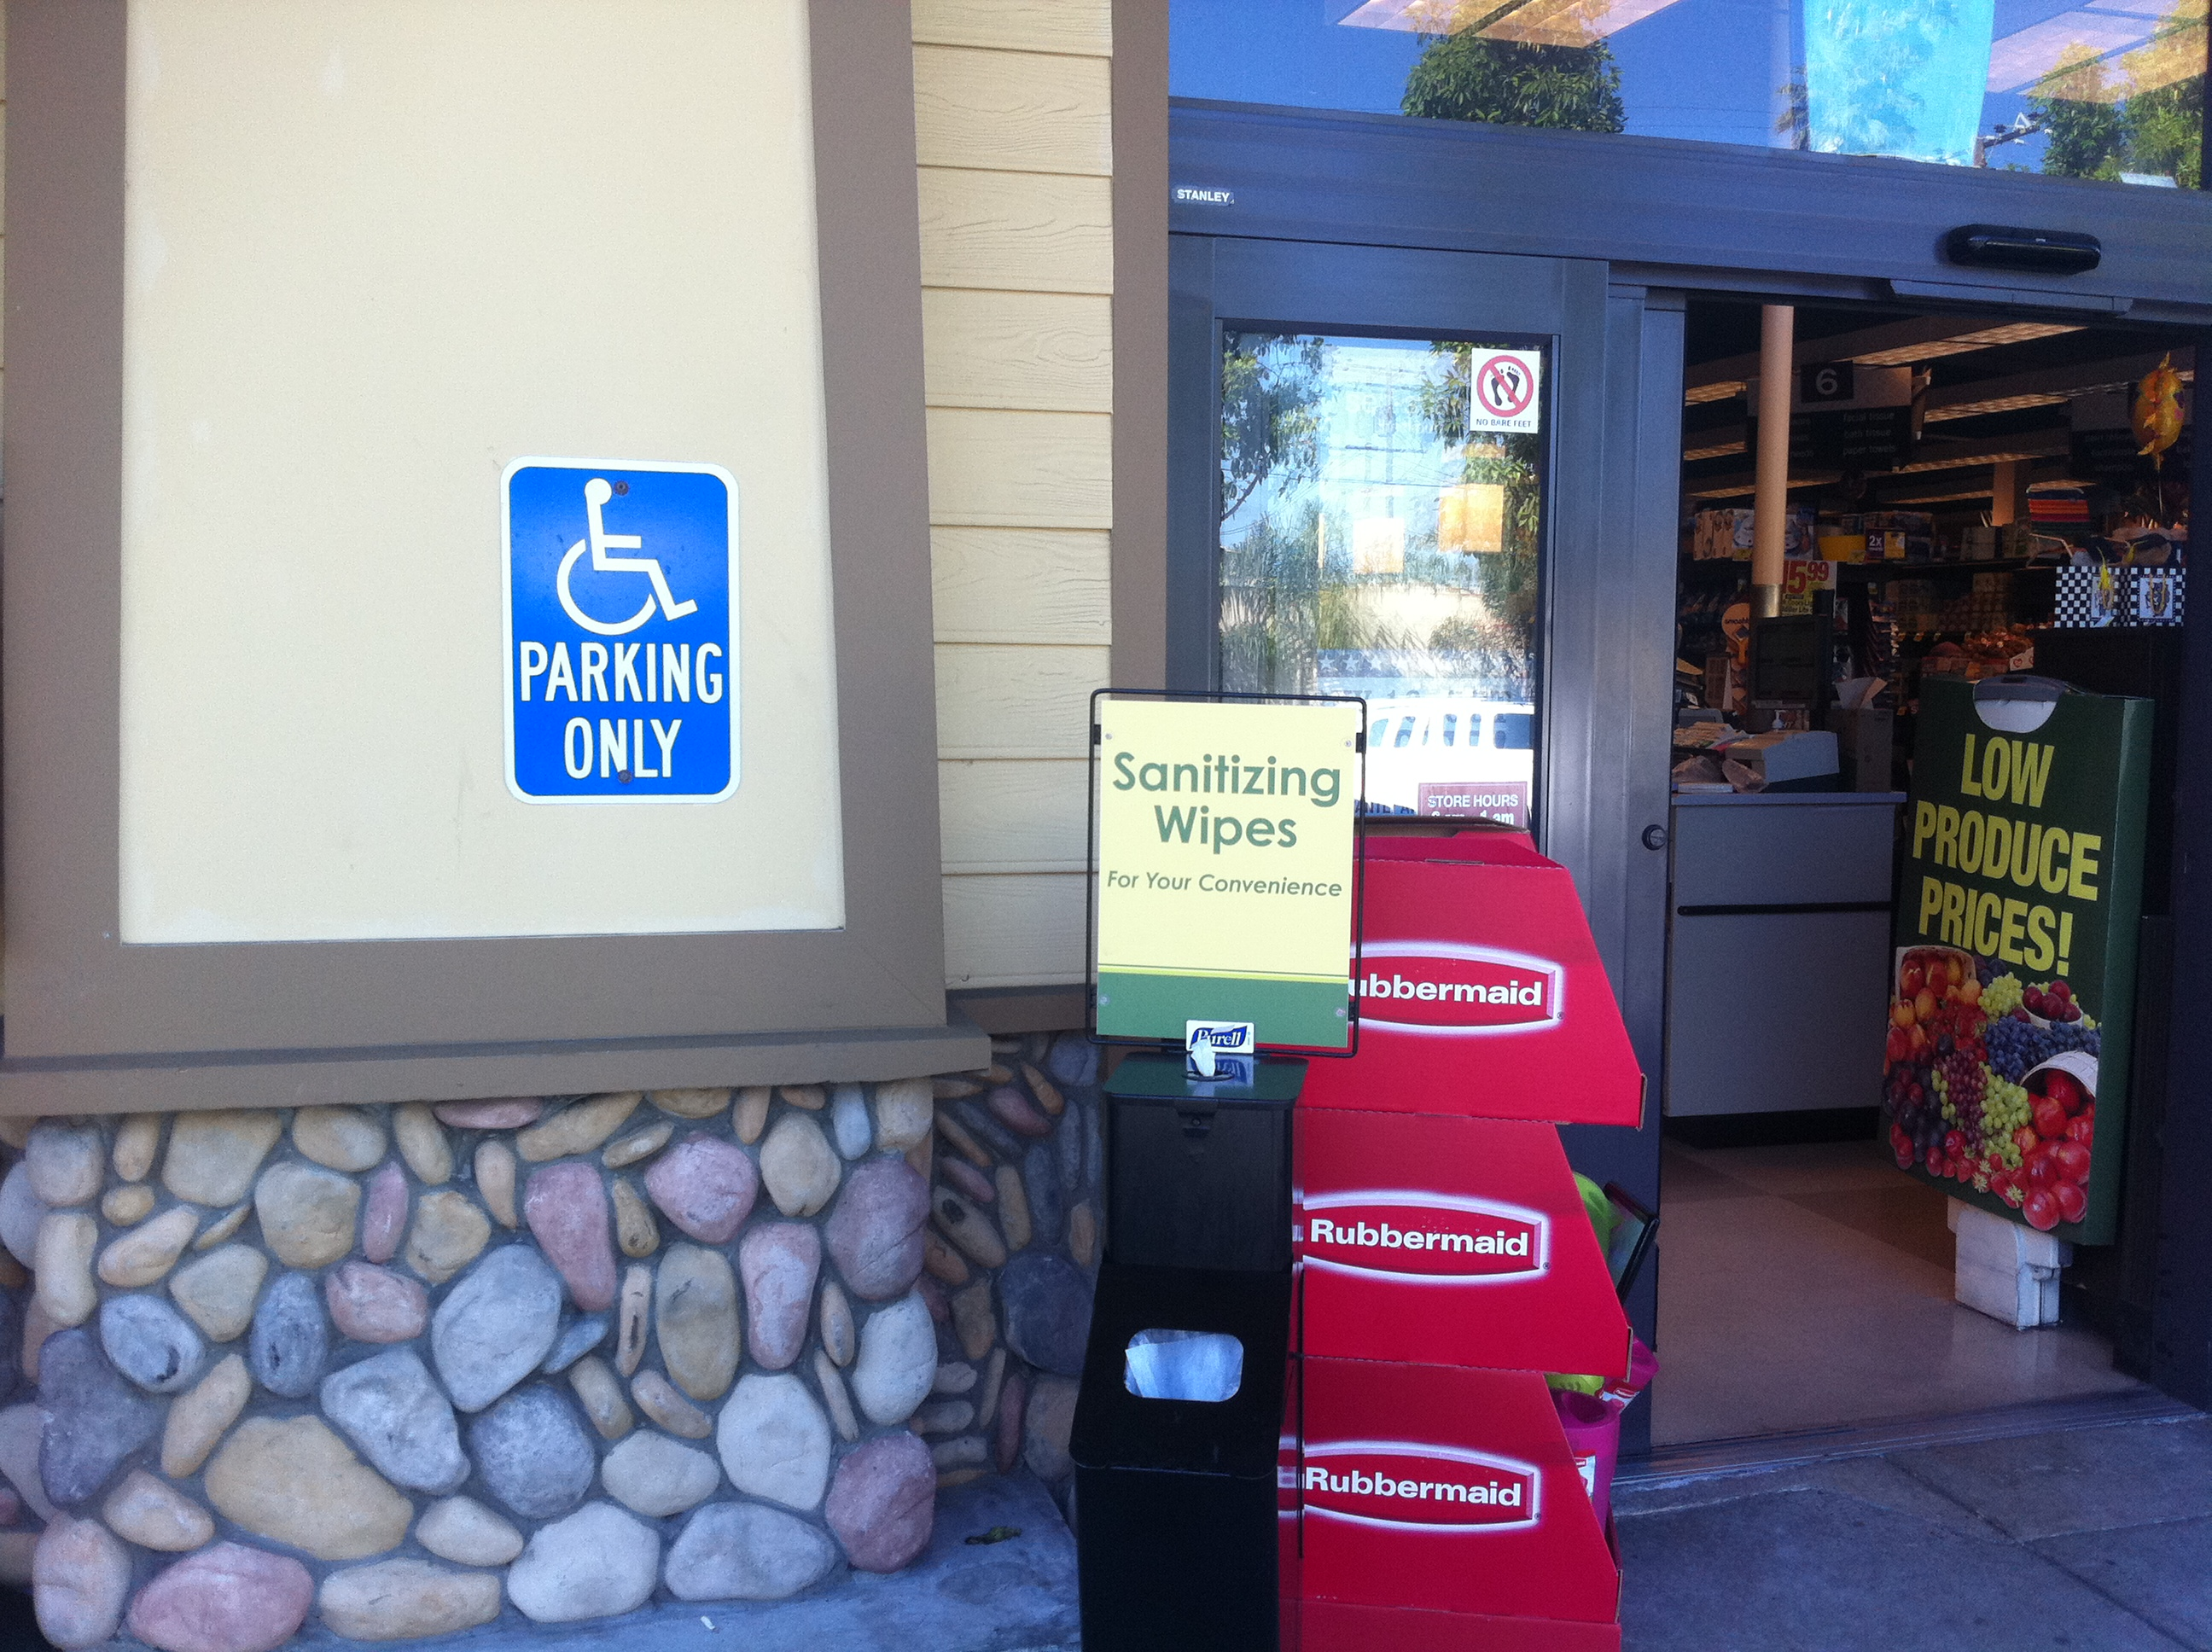 handicapped parking sign by storefront